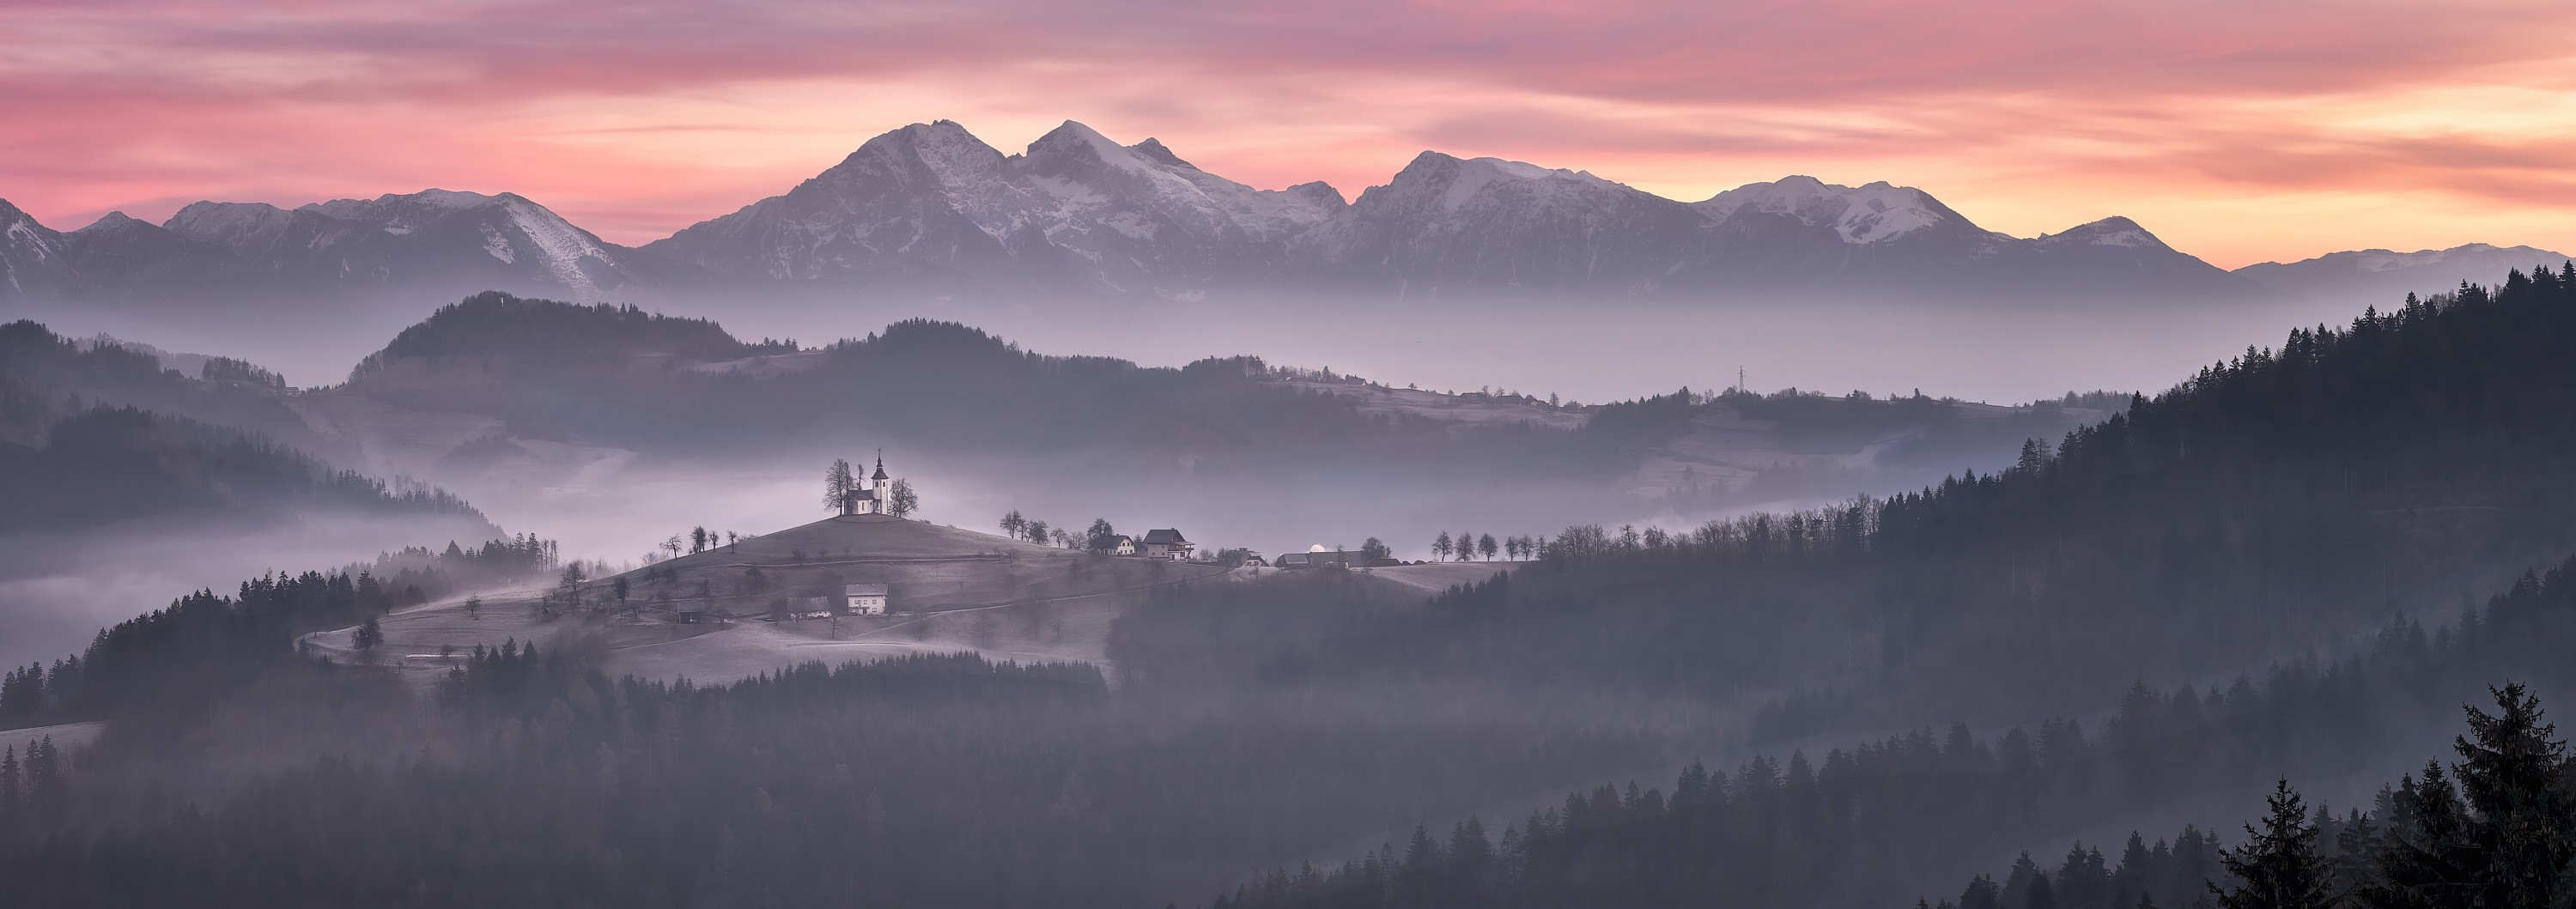 A fine art photograph of a pastel pink and orange sunrise over a range of purple mountains